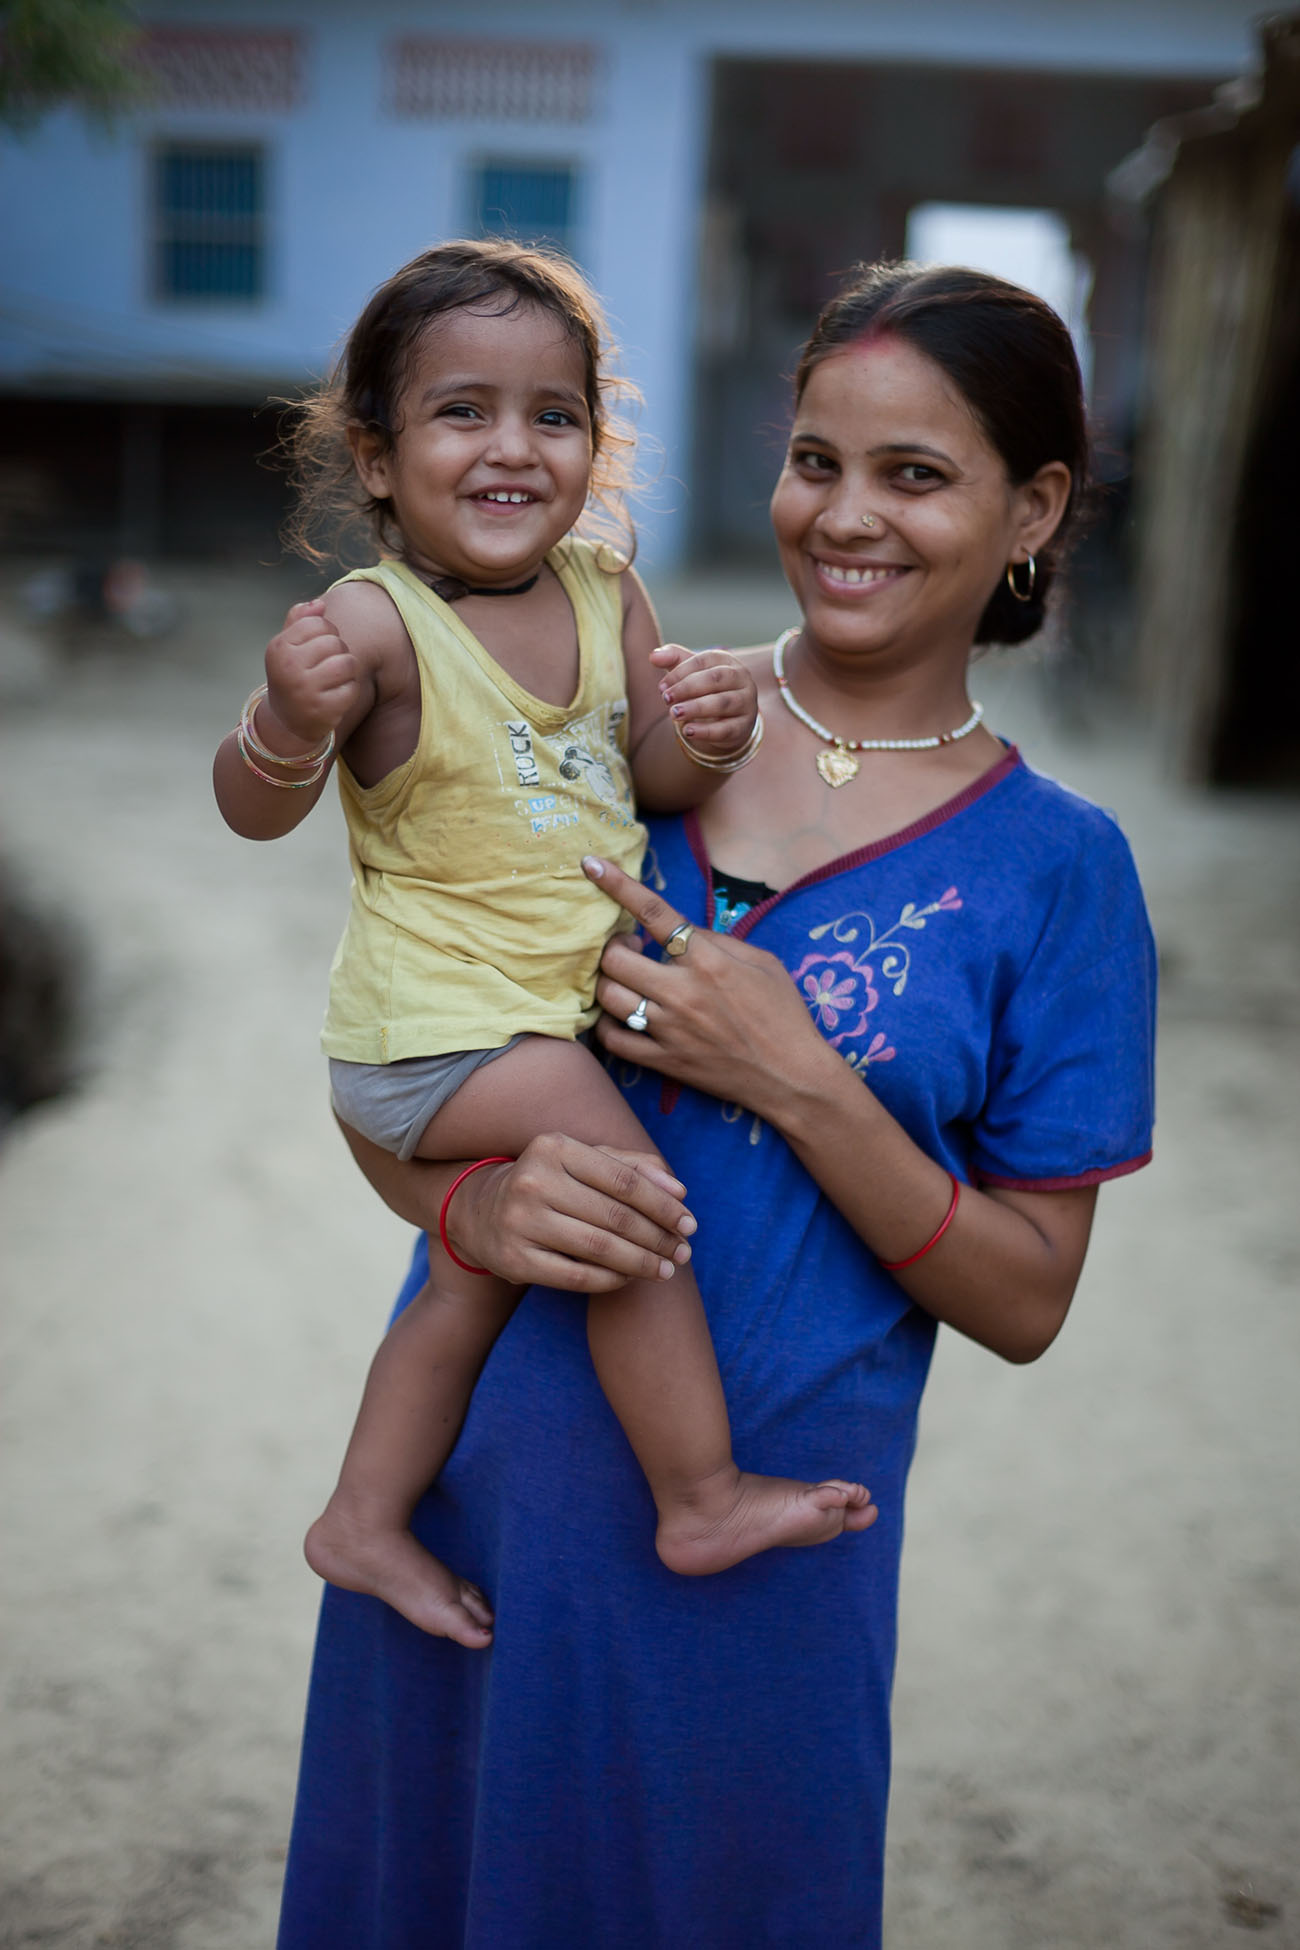 A happy young mother in India holds her child.